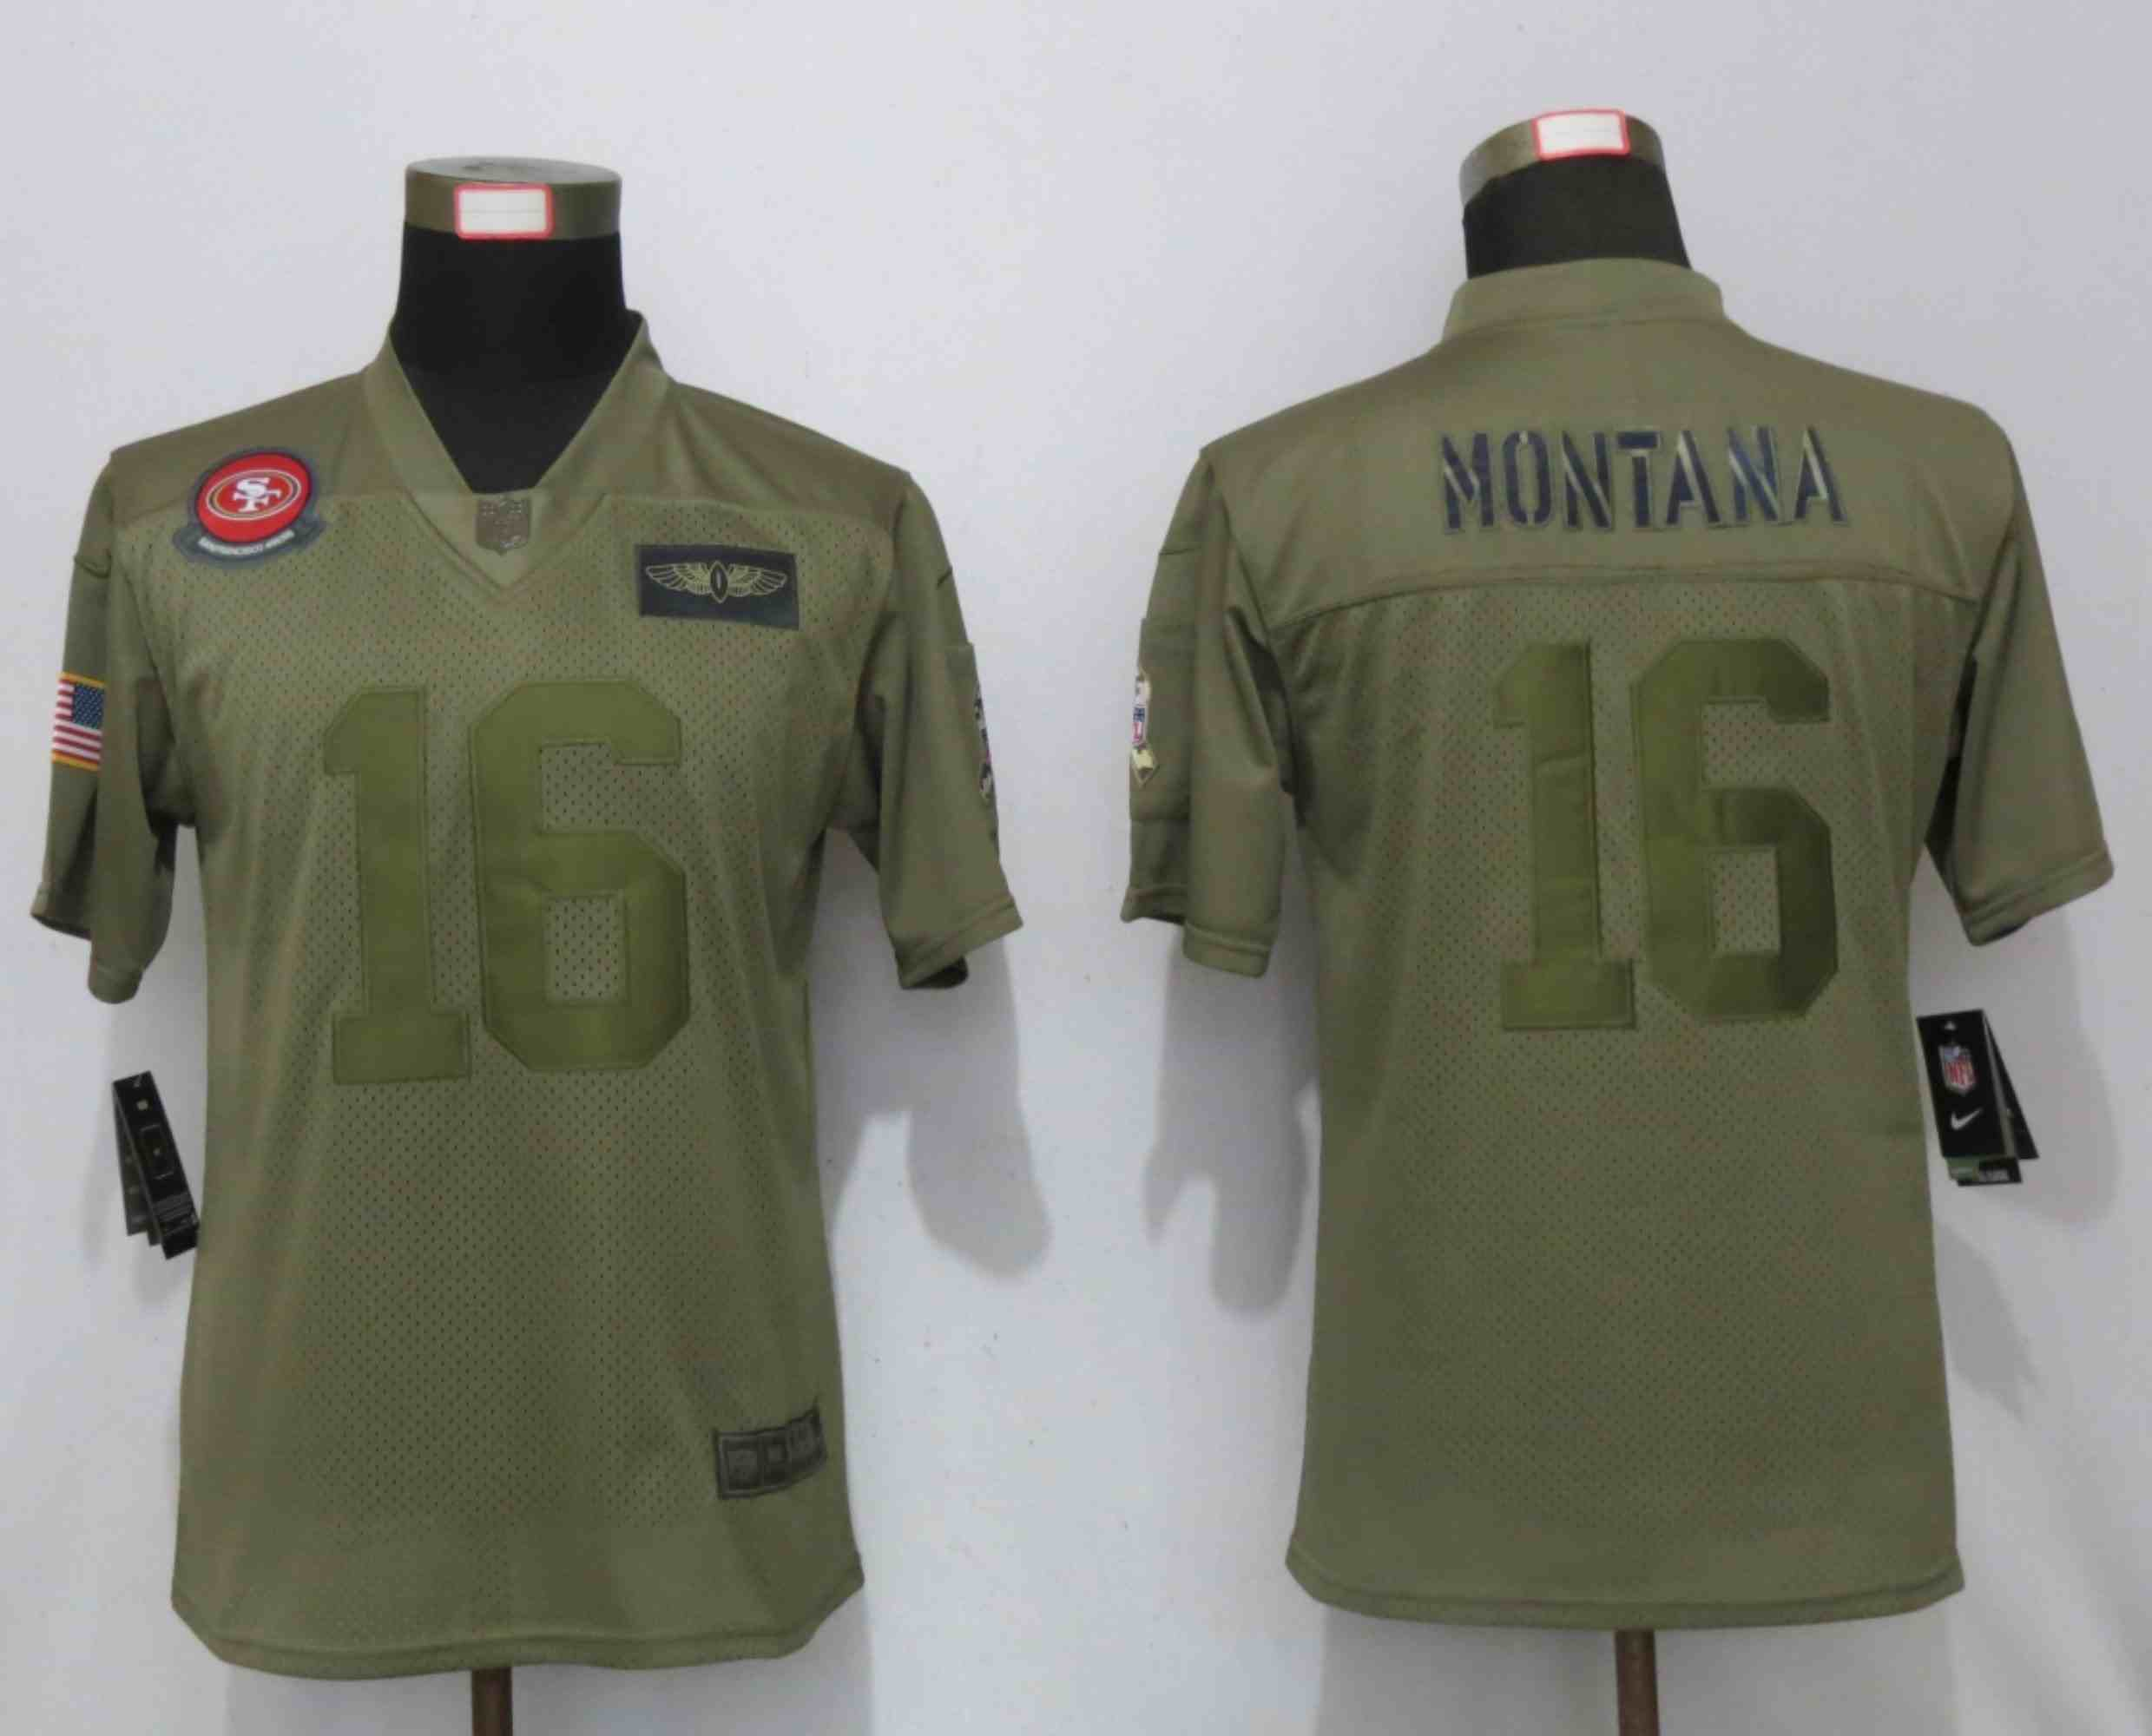 Women New Nike San Francisco 49ers 16 Montana Nike Camo 2019 Salute to Service Elite Playey